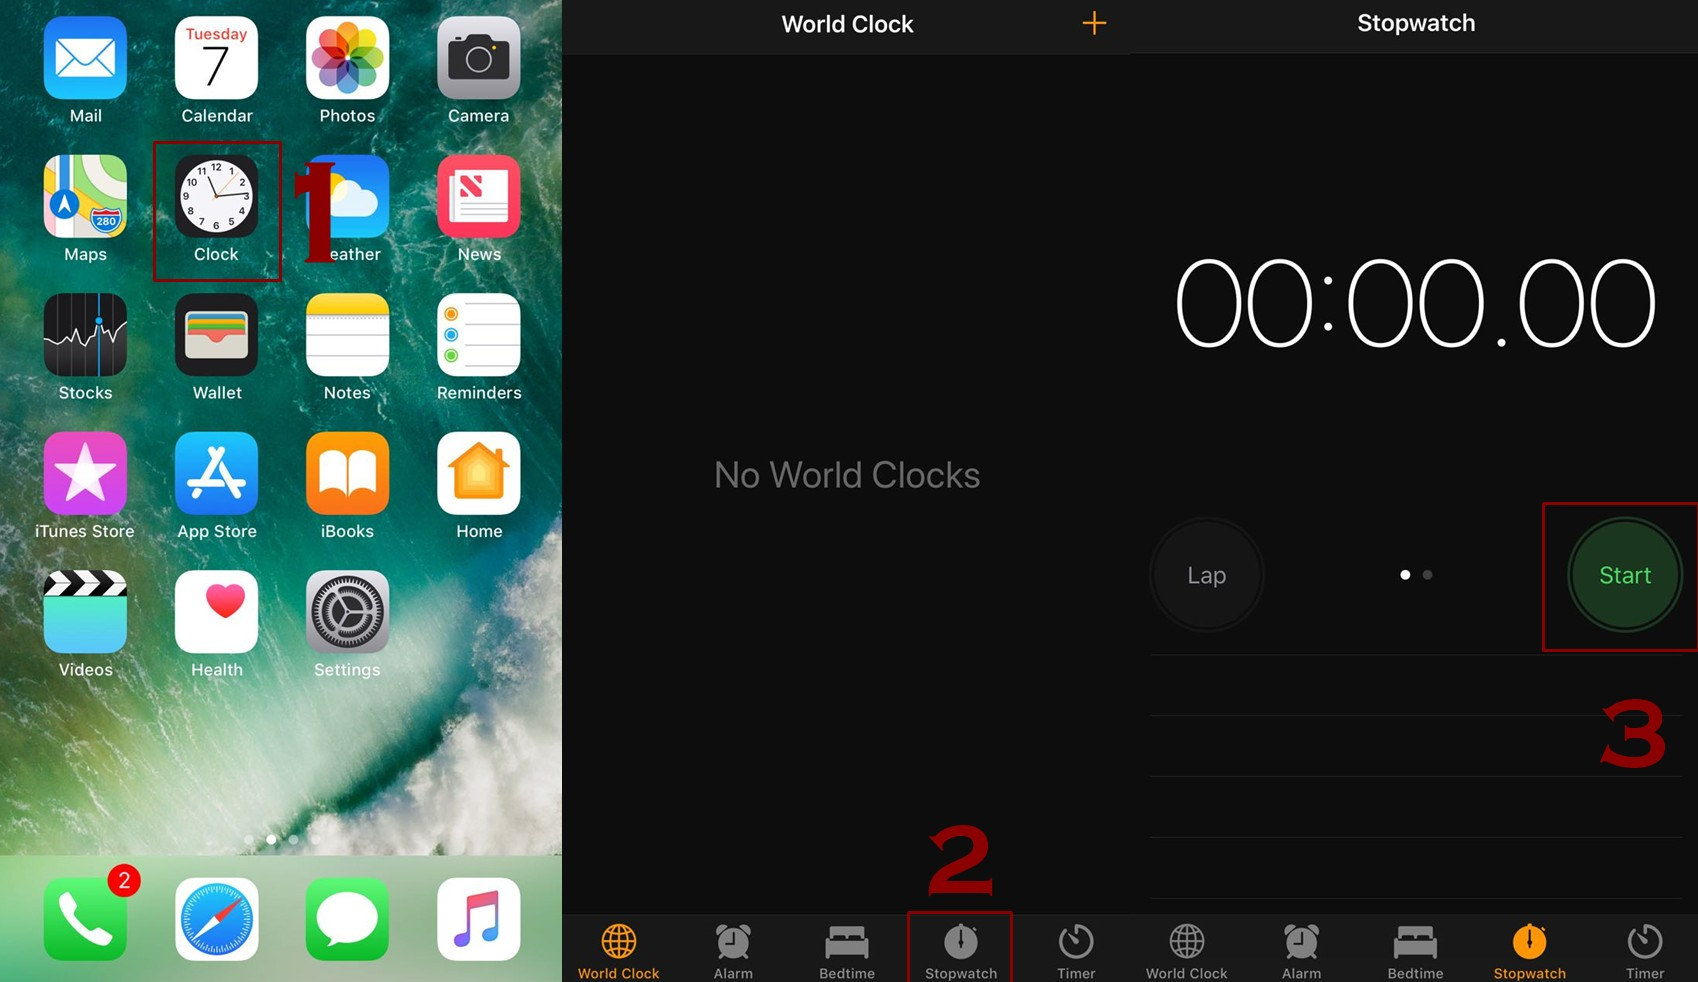 how to start stopwatch on iphone - How to use Stopwatch on iPhone